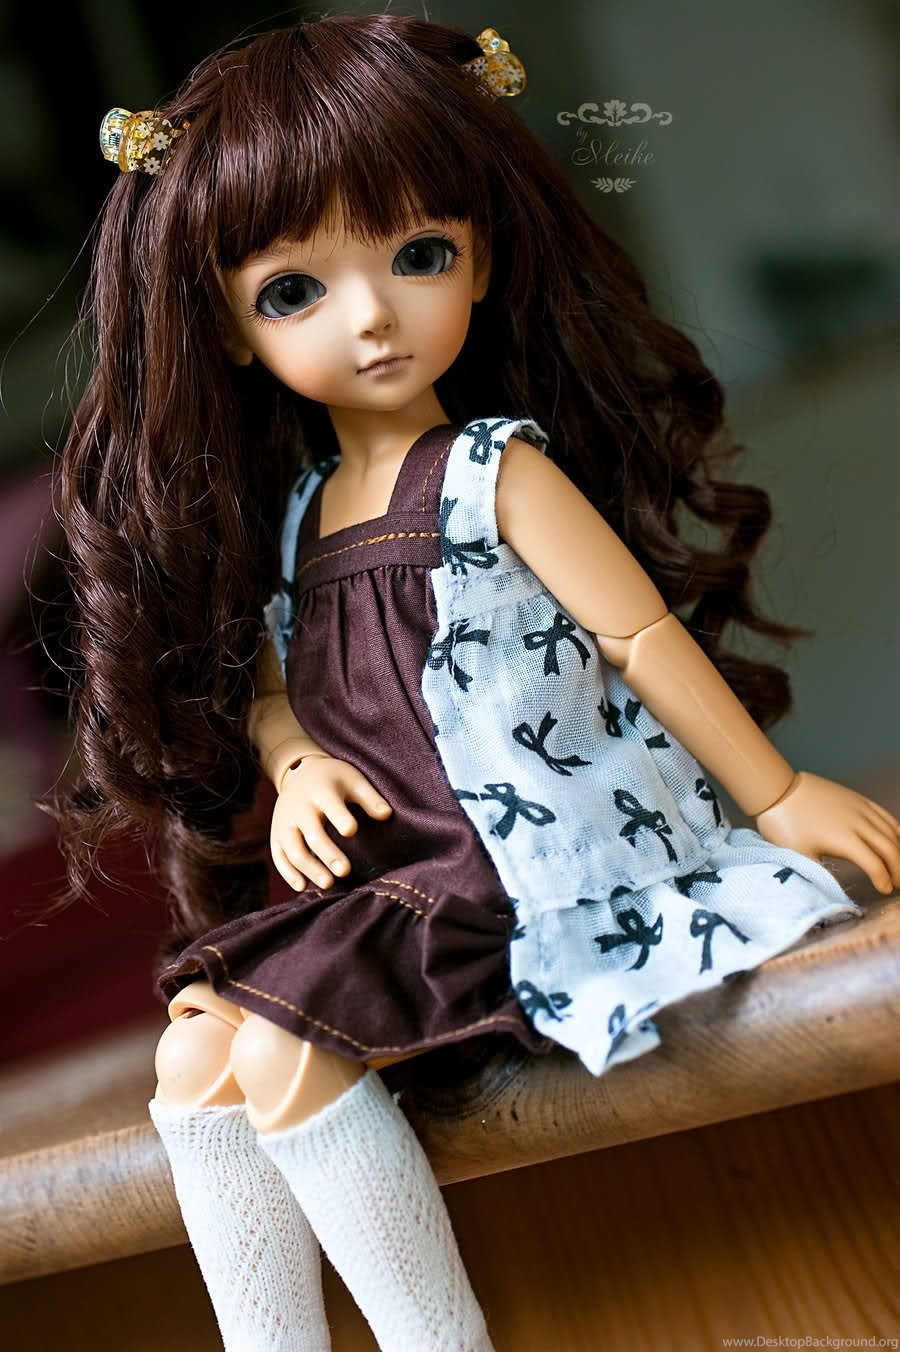 Cute Doll Wallpapers For Facebook Cute Lovely Dolls Pictures Dolls